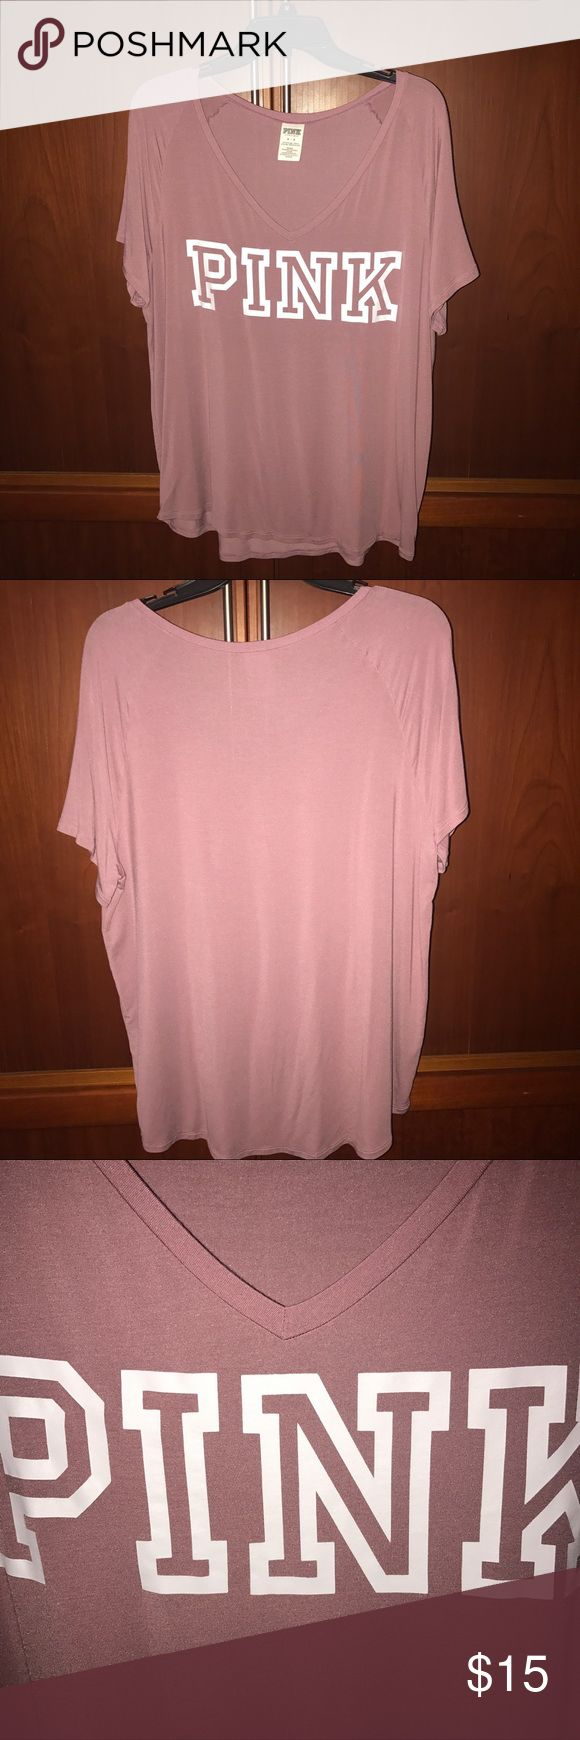 Super soft slouchy v-neck tee Worn twice. Like new condition. No flaws and lettering is still intact. Super comfy and soft just like the name of it! PINK Victoria's Secret Tops Tees - Short Sleeve